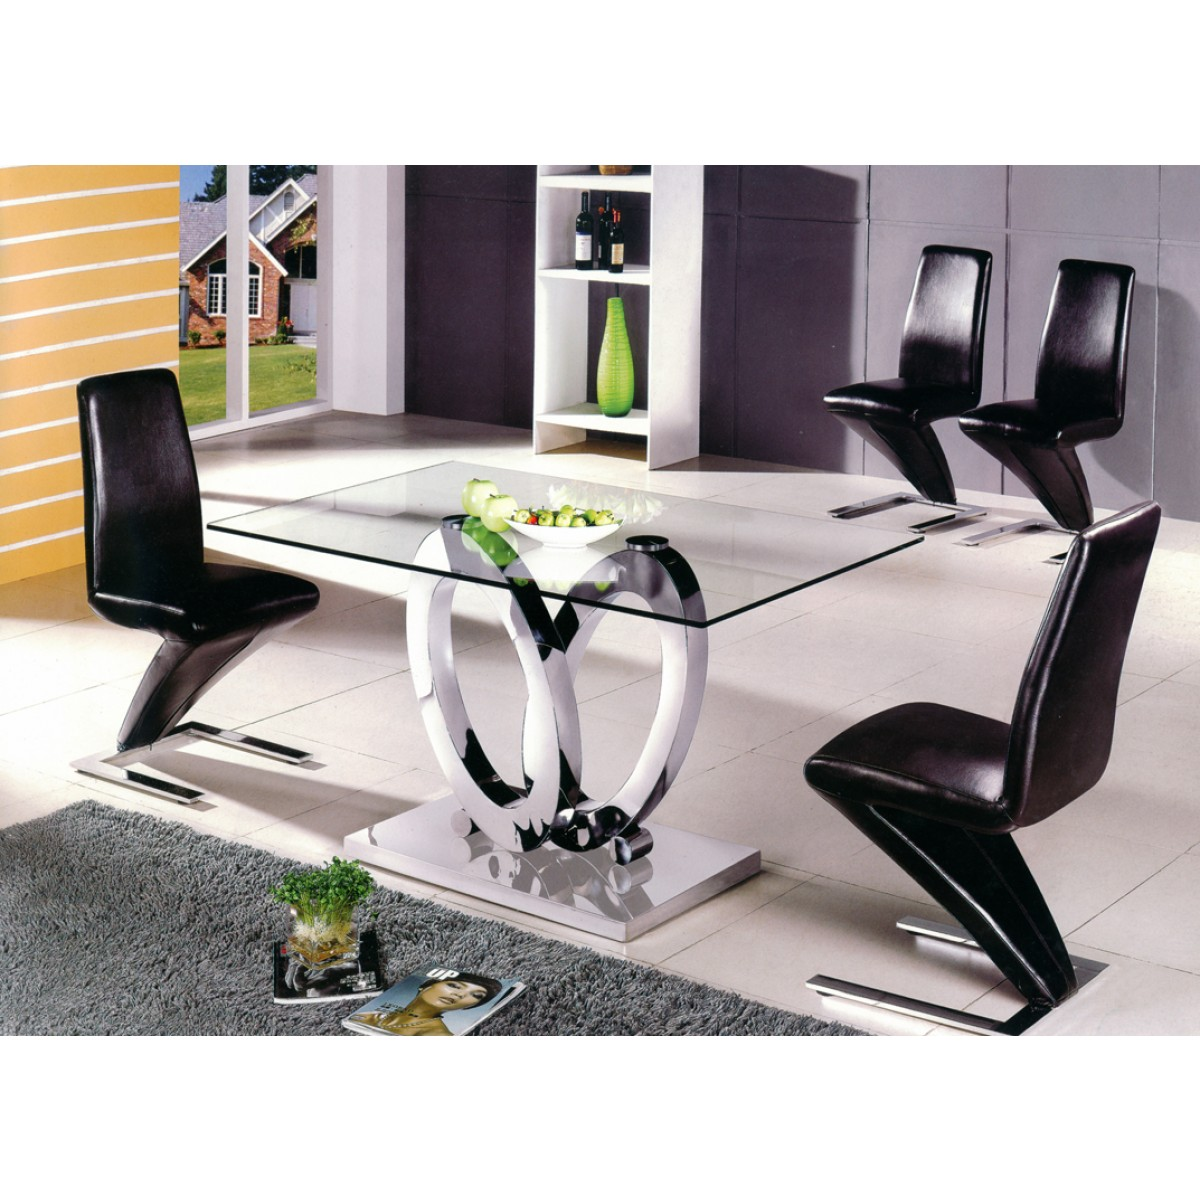 Table manger design ellipse taille au choix - Tables a manger design ...